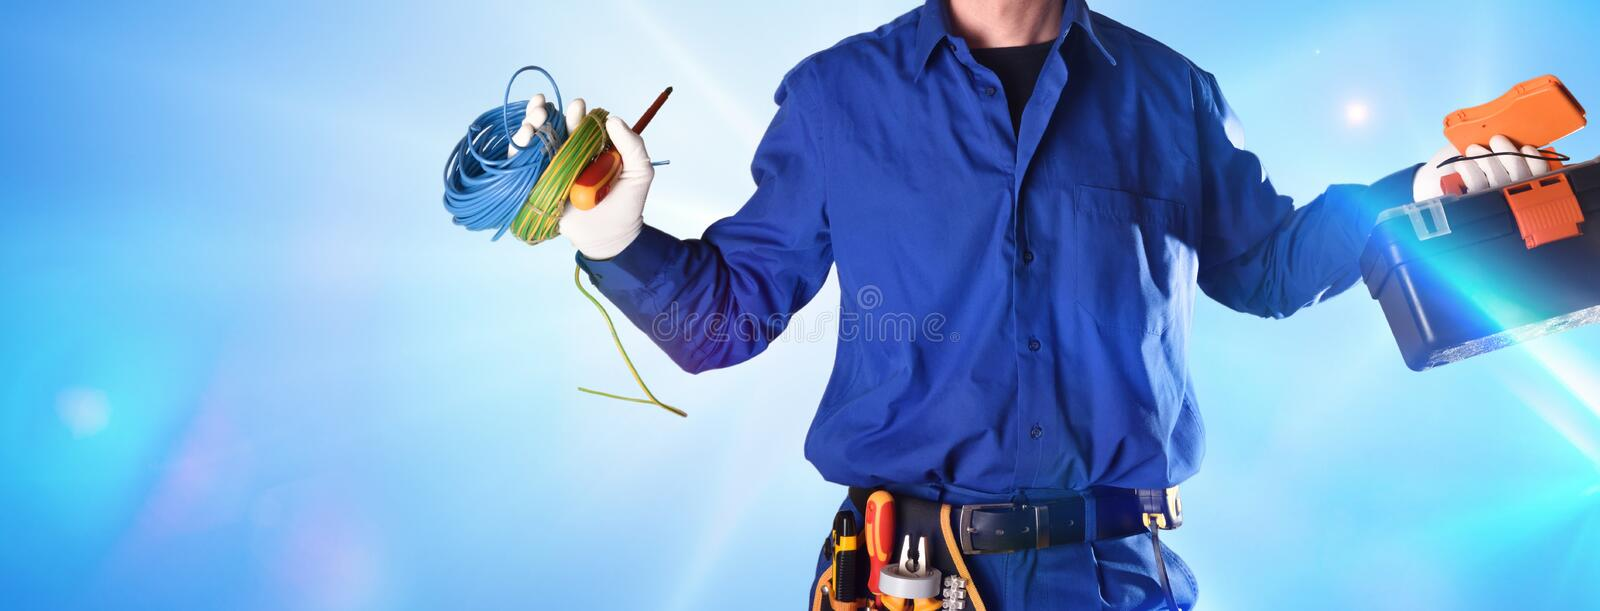 Uniformed electrician with tools and equipment with effect of lights stock photo